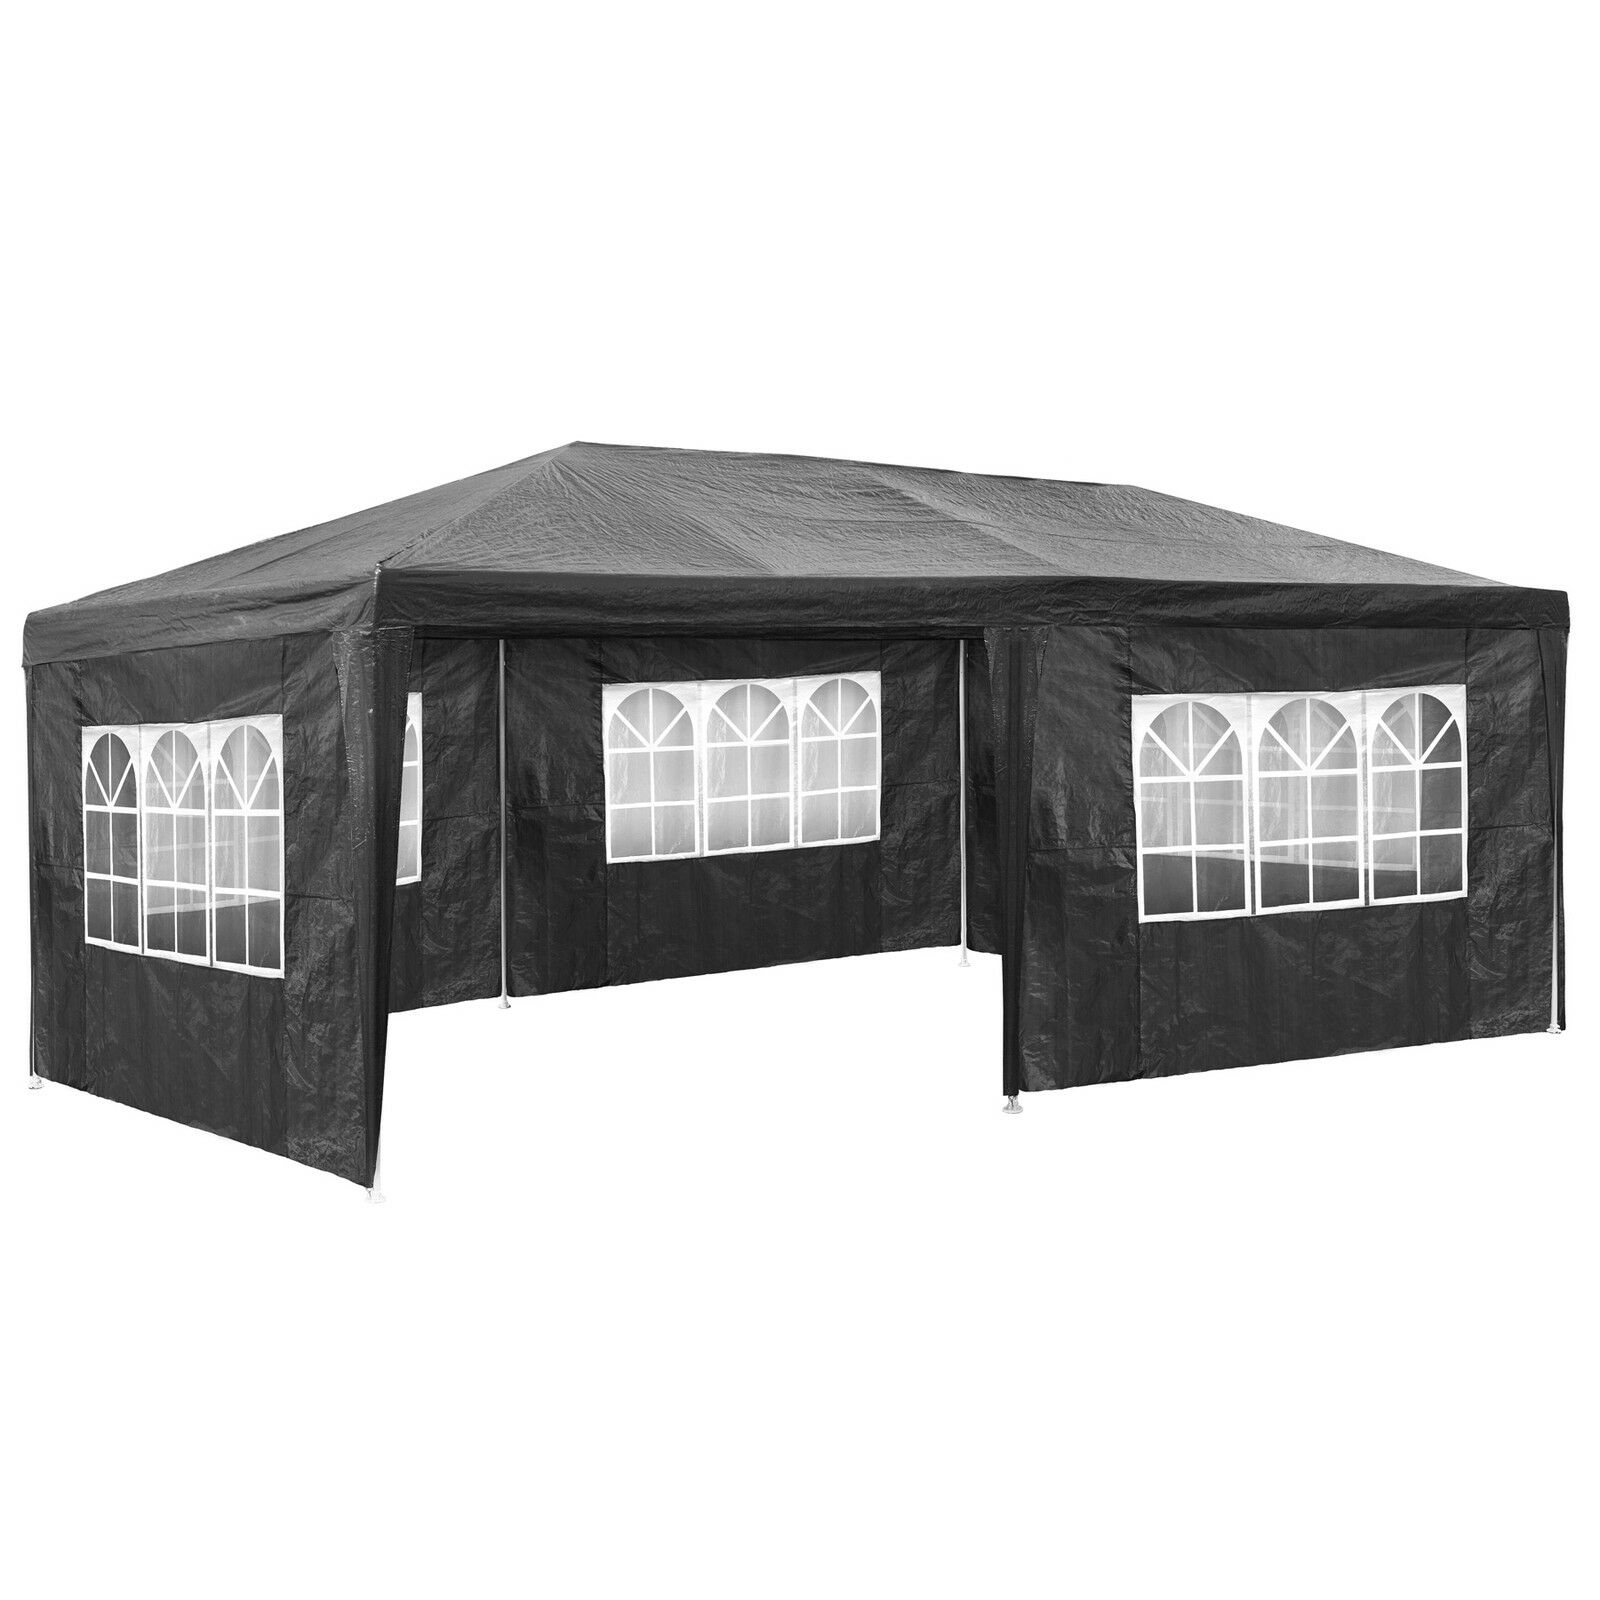 pavillon 3x6m grau partyzelt gartenzelt festzelt zelt gartenpavillon bierzelt eur 66 99. Black Bedroom Furniture Sets. Home Design Ideas